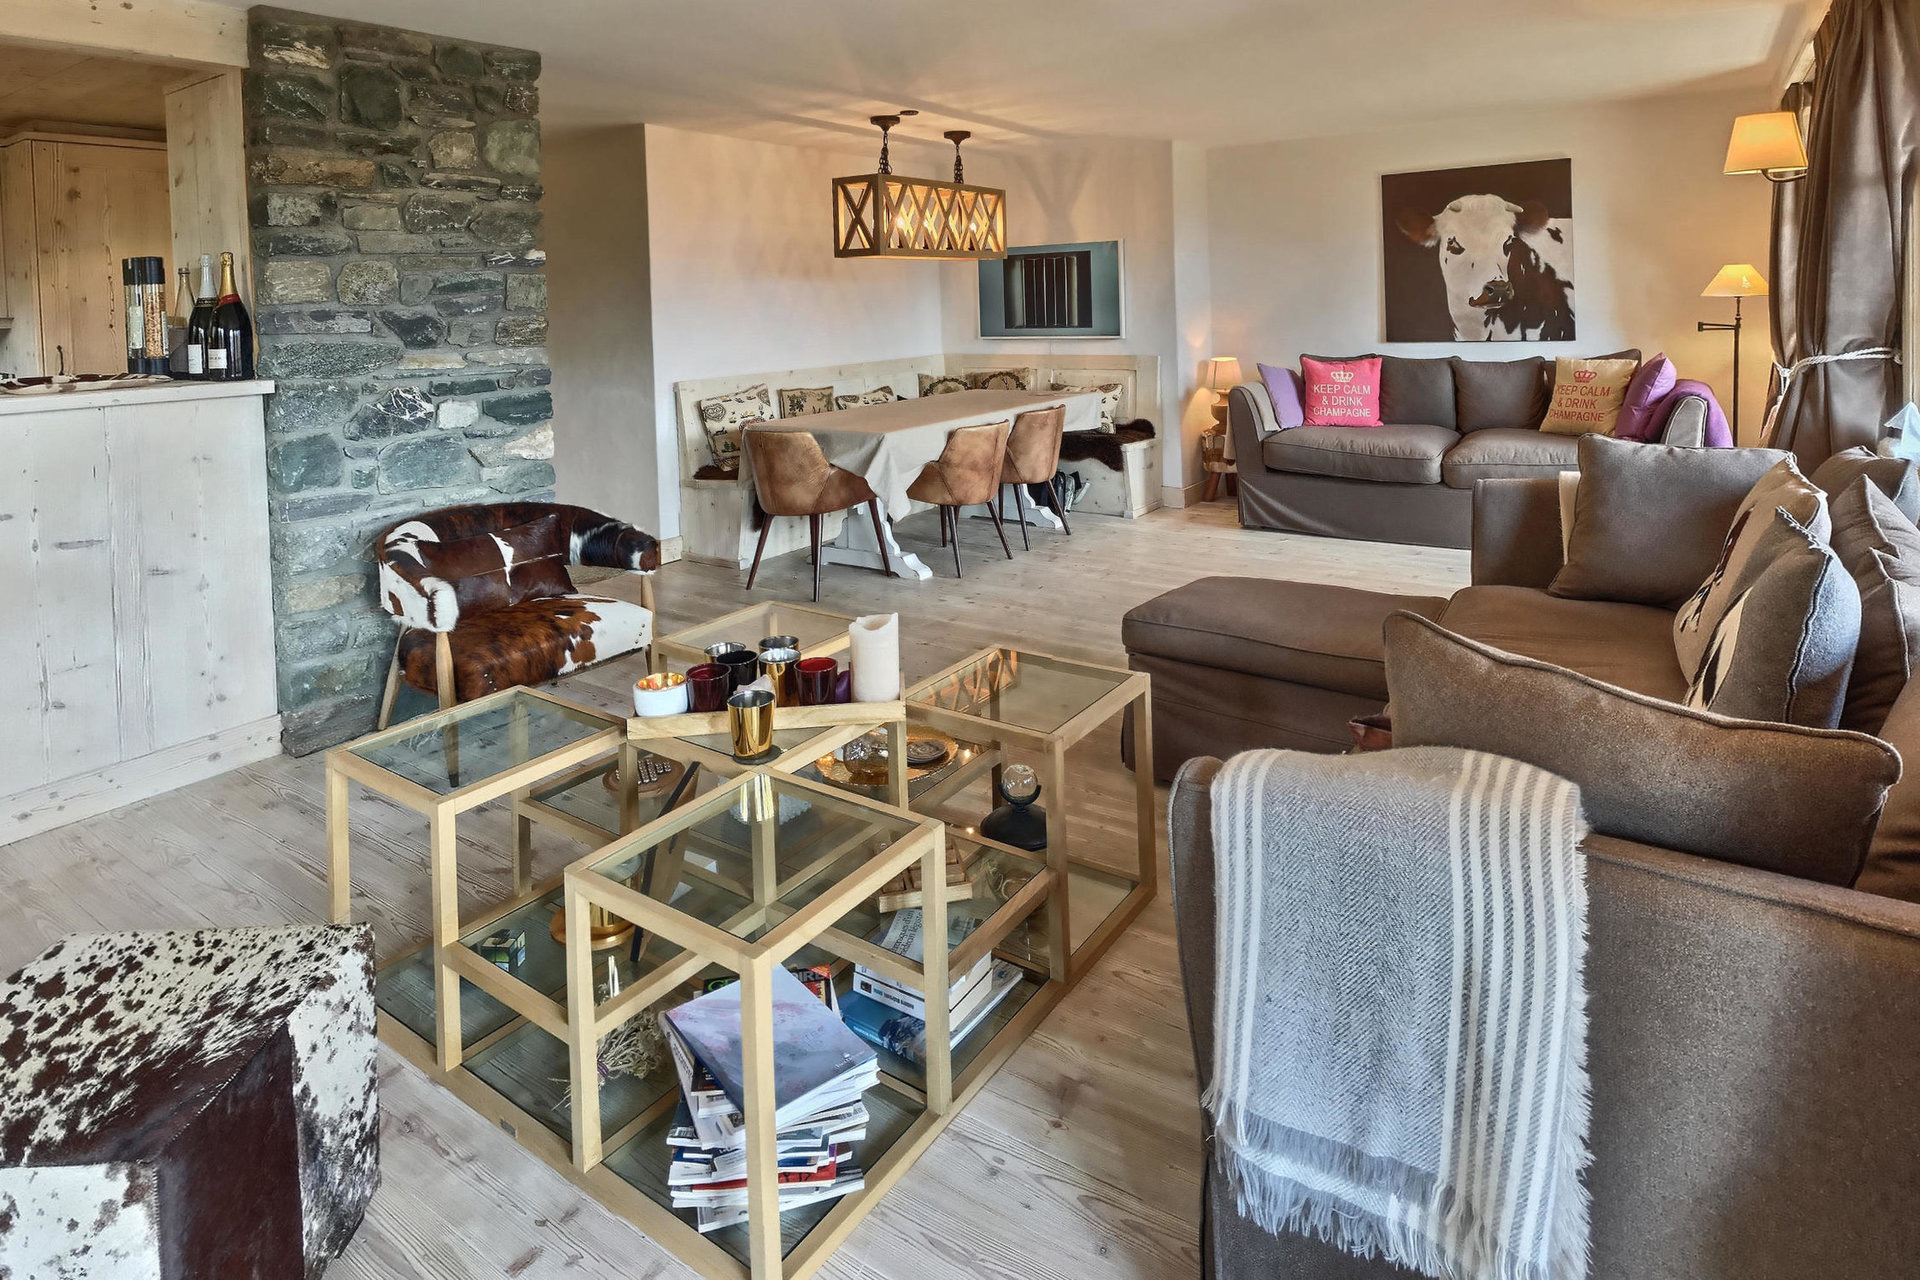 Bright and sunny apartment in Switzerland, near the 'Les Esserts' in the resort of Verbier